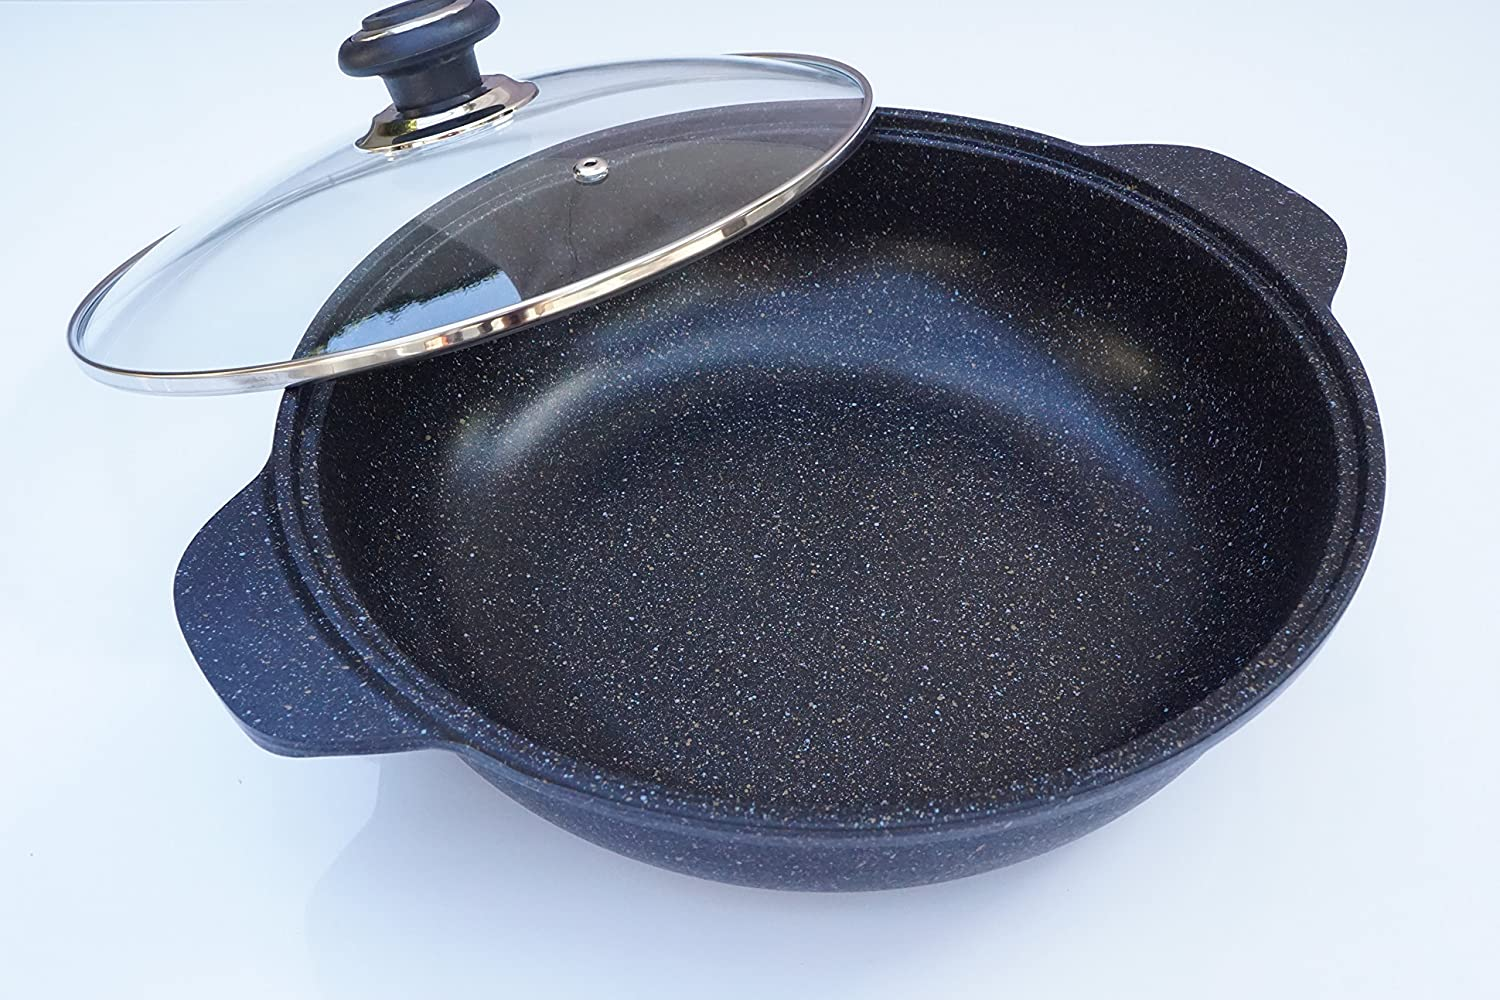 Home N Kitchenware Collection 12.5  Inch (32cm) Ceramic Marble Jumbo Wok, 5-Layer Marble Coating, Extreme Non-Stick, Heavy Gauge, Marble Coated Cast Aluminum